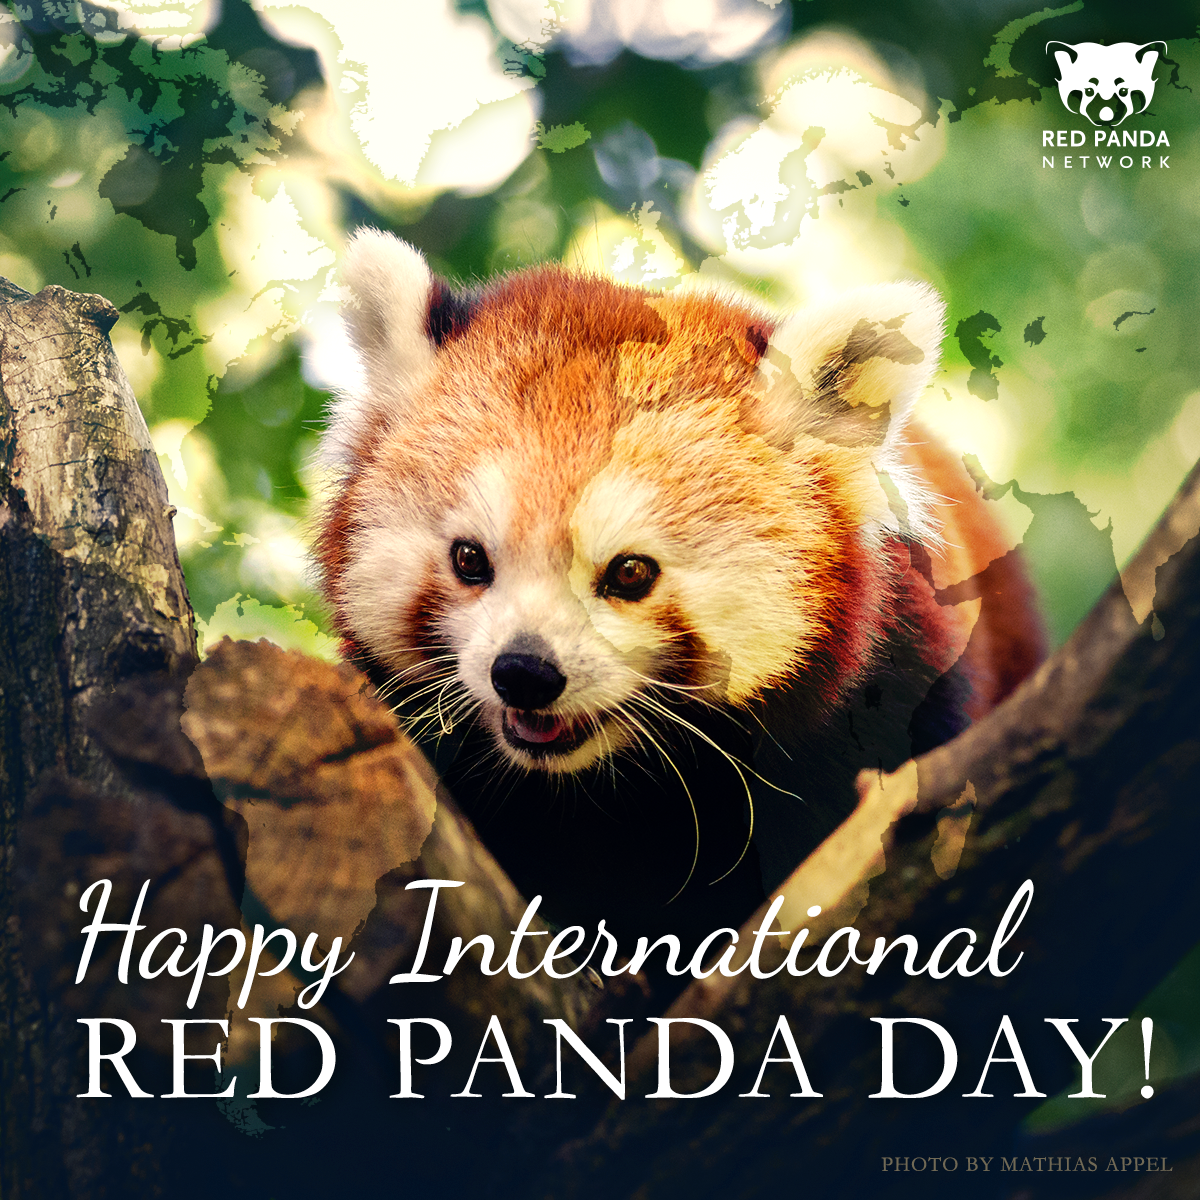 Happy International #RedPandaDay Everyone! Learn and adopt at http://t.co/Asqn5LEpZE! http://t.co/Wod8yHRZFe